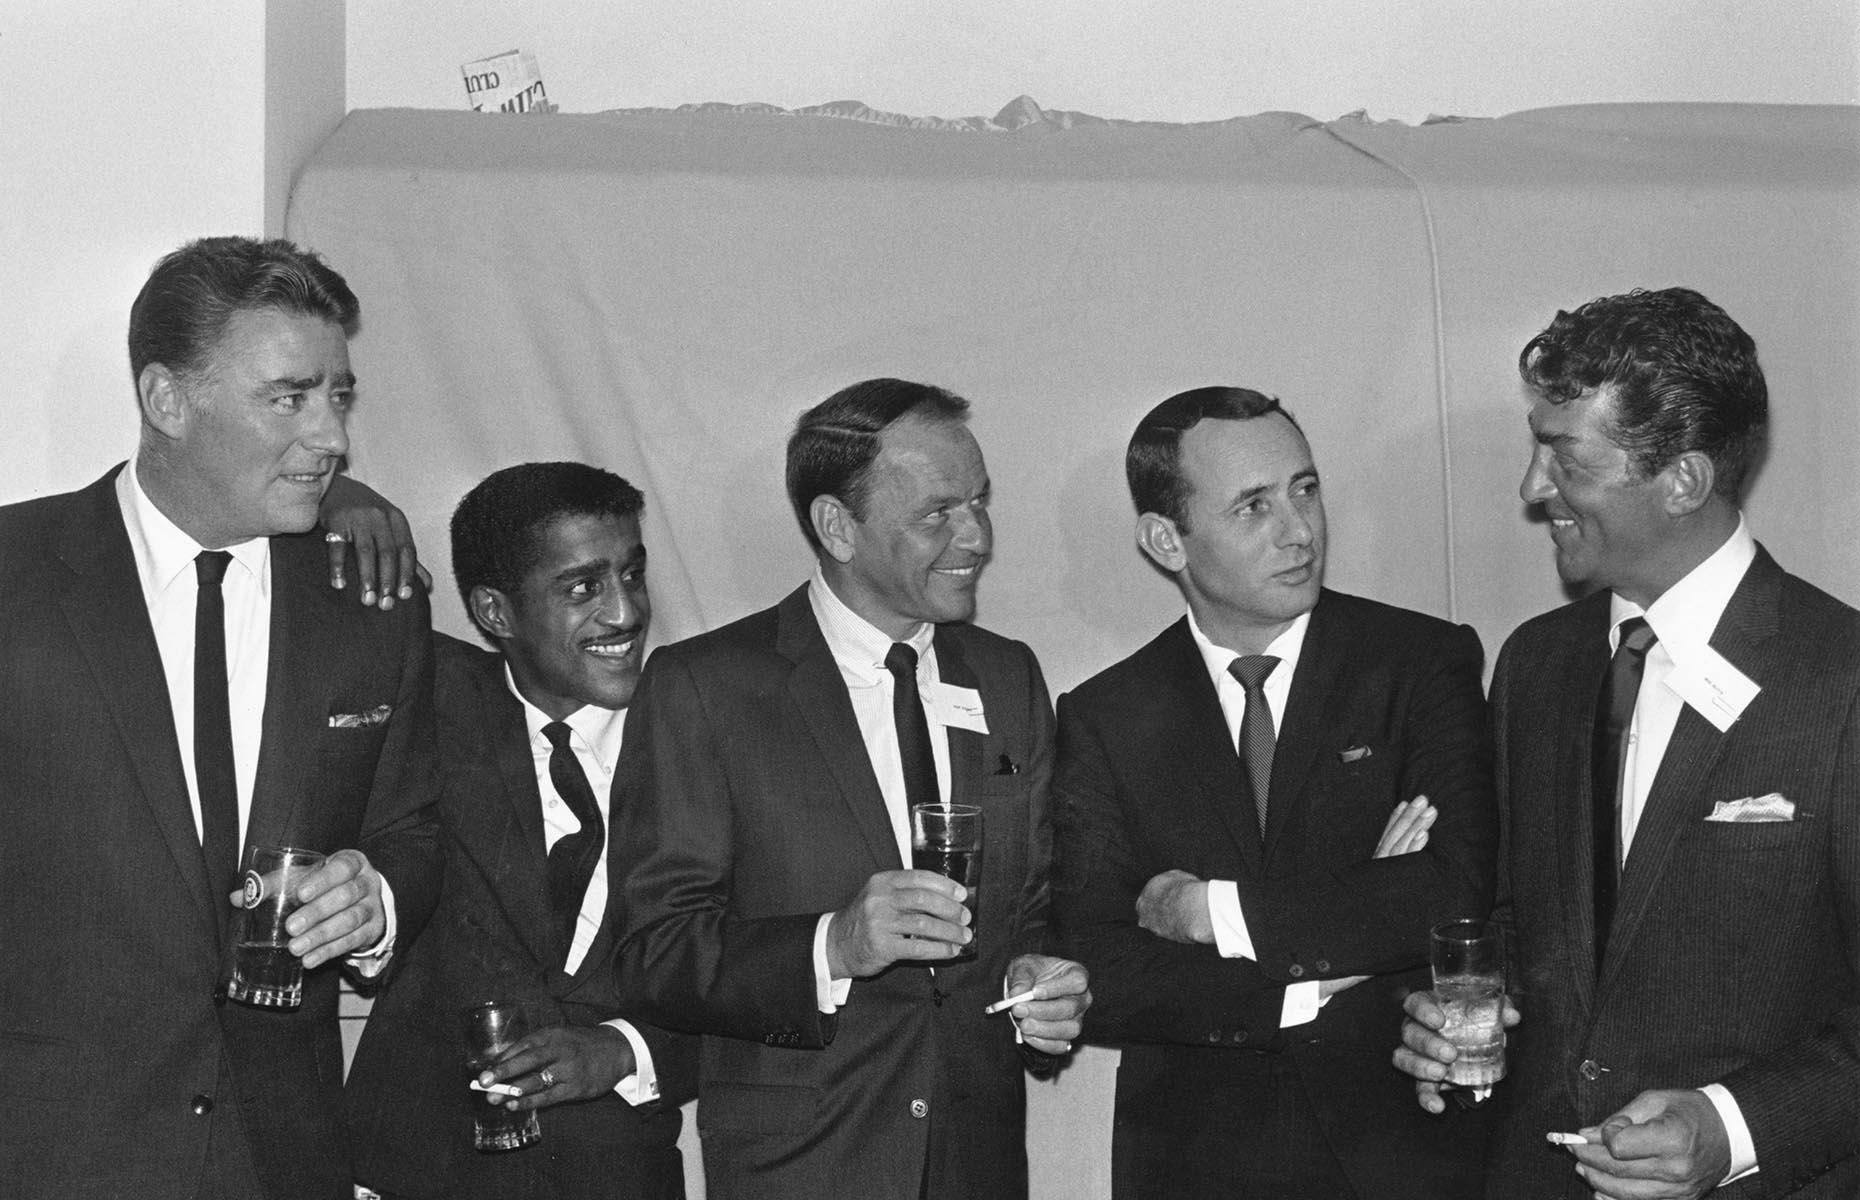 Slide 19 of 34: The Rat Pack (pictured here) are often praised for their desegregation efforts in Las Vegas. When Sammy Davis Jr headlined at the Frontier Casino, he wasn't allowed to stay in the city's hotels, like all Black performers at the time. He wasn't provided with a dressing room and was required to wait outside by the pool between acts. With the Rat Pack's support, Davis Jr later refused to work in any establishment with racial segregation until full desegregation in 1960. When The Moulin Rouge opened in May 1955, it became the first integrated casino in Las Vegas.